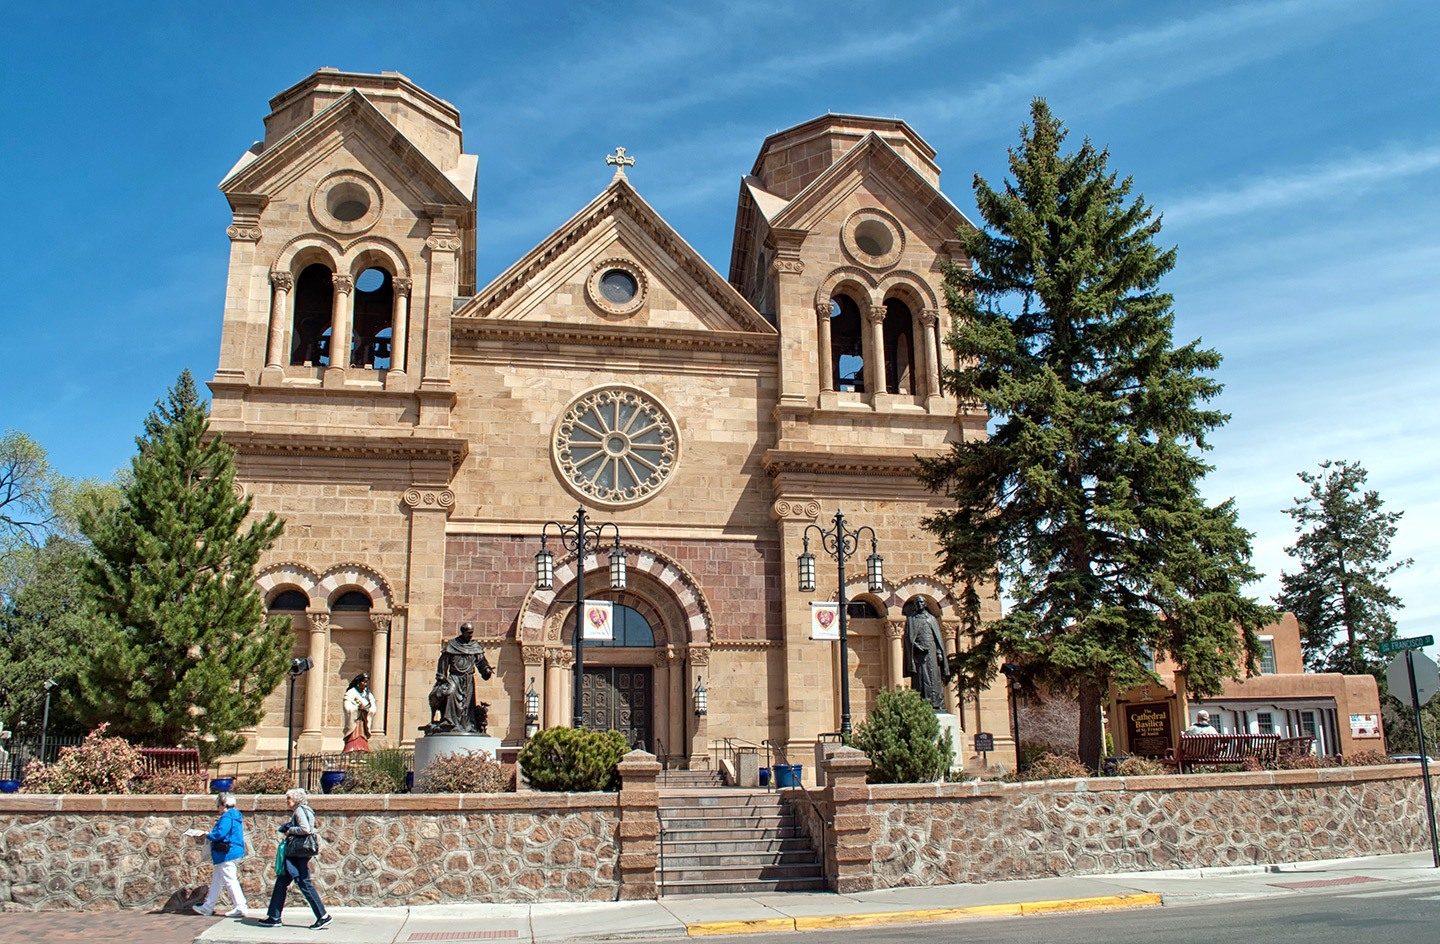 Cathedral Basilica of Saint Francis in Santa Fe, New Mexico